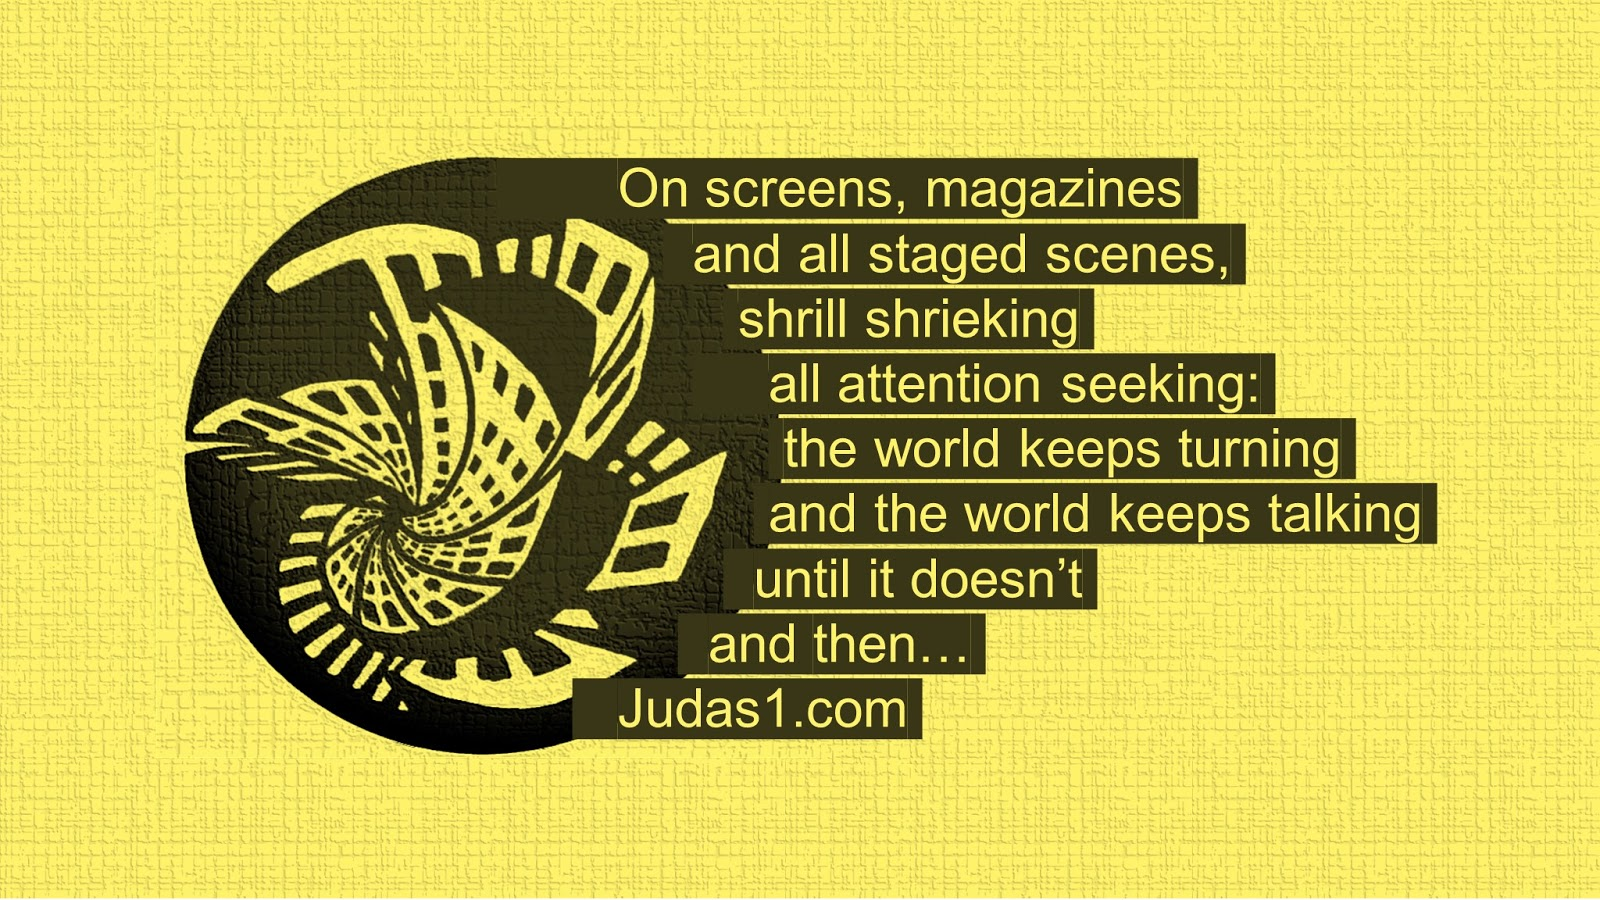 Scream screens poem by Judas1